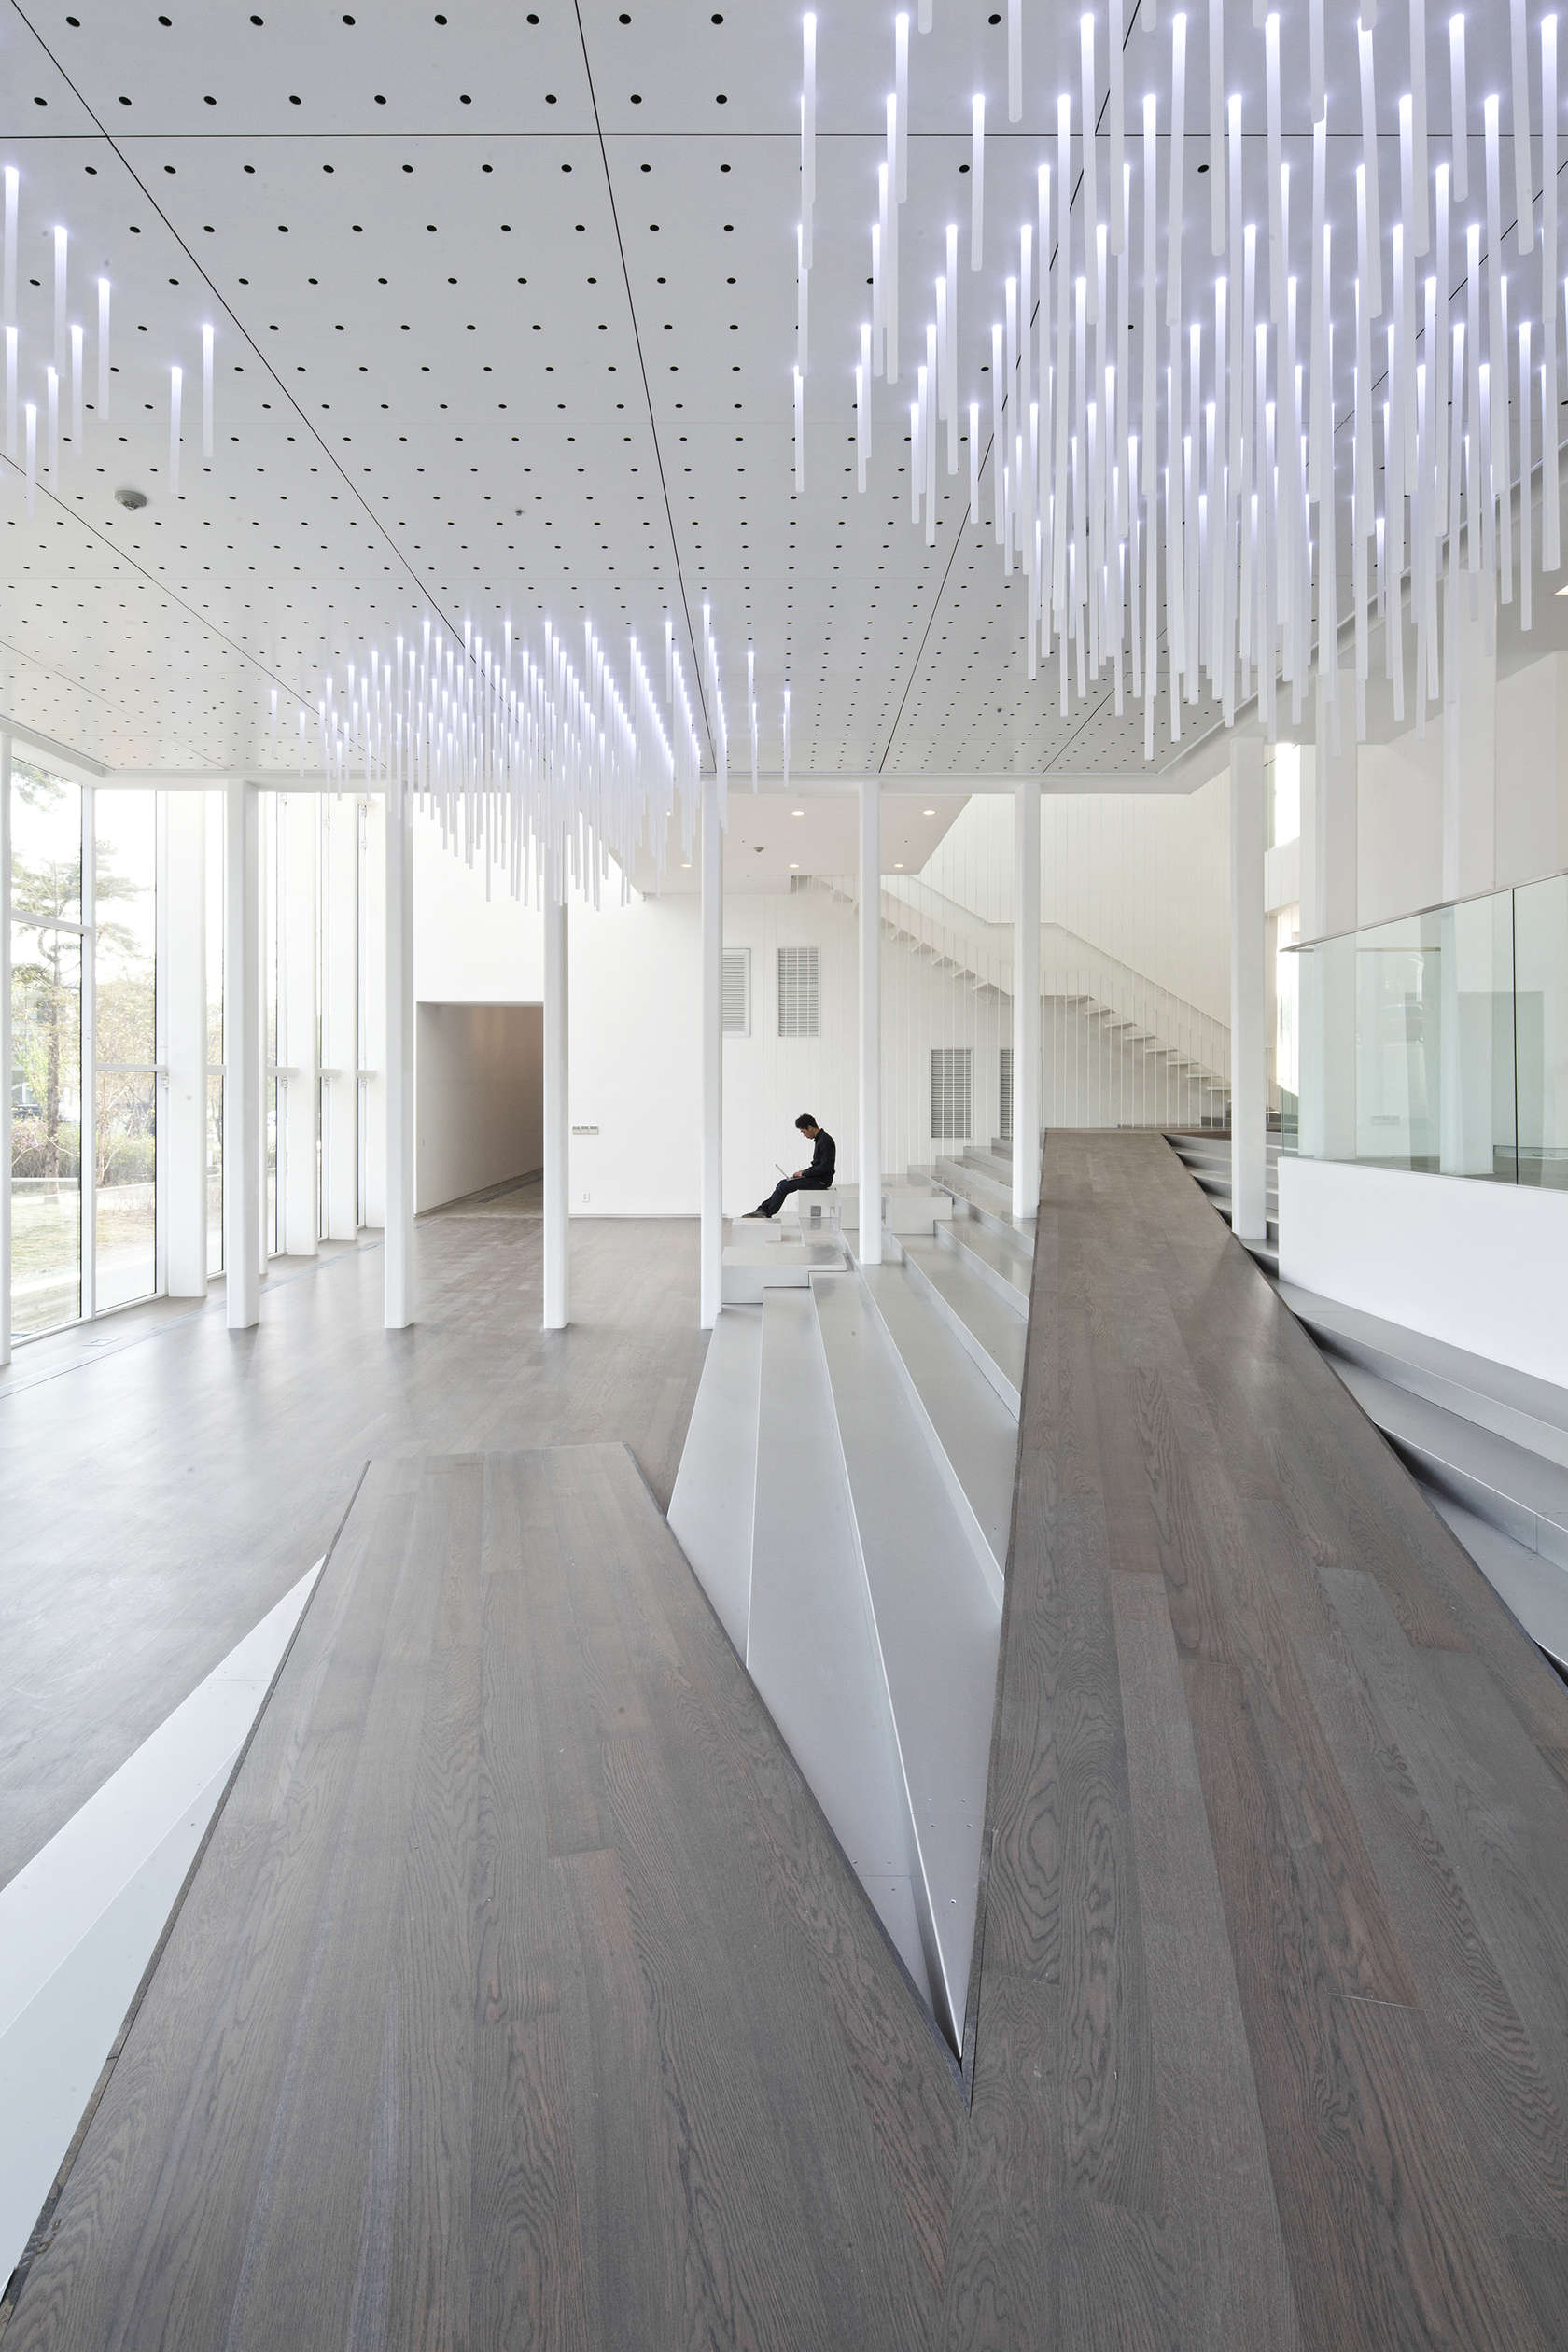 Gallery Space Design White Block Gallery - ...